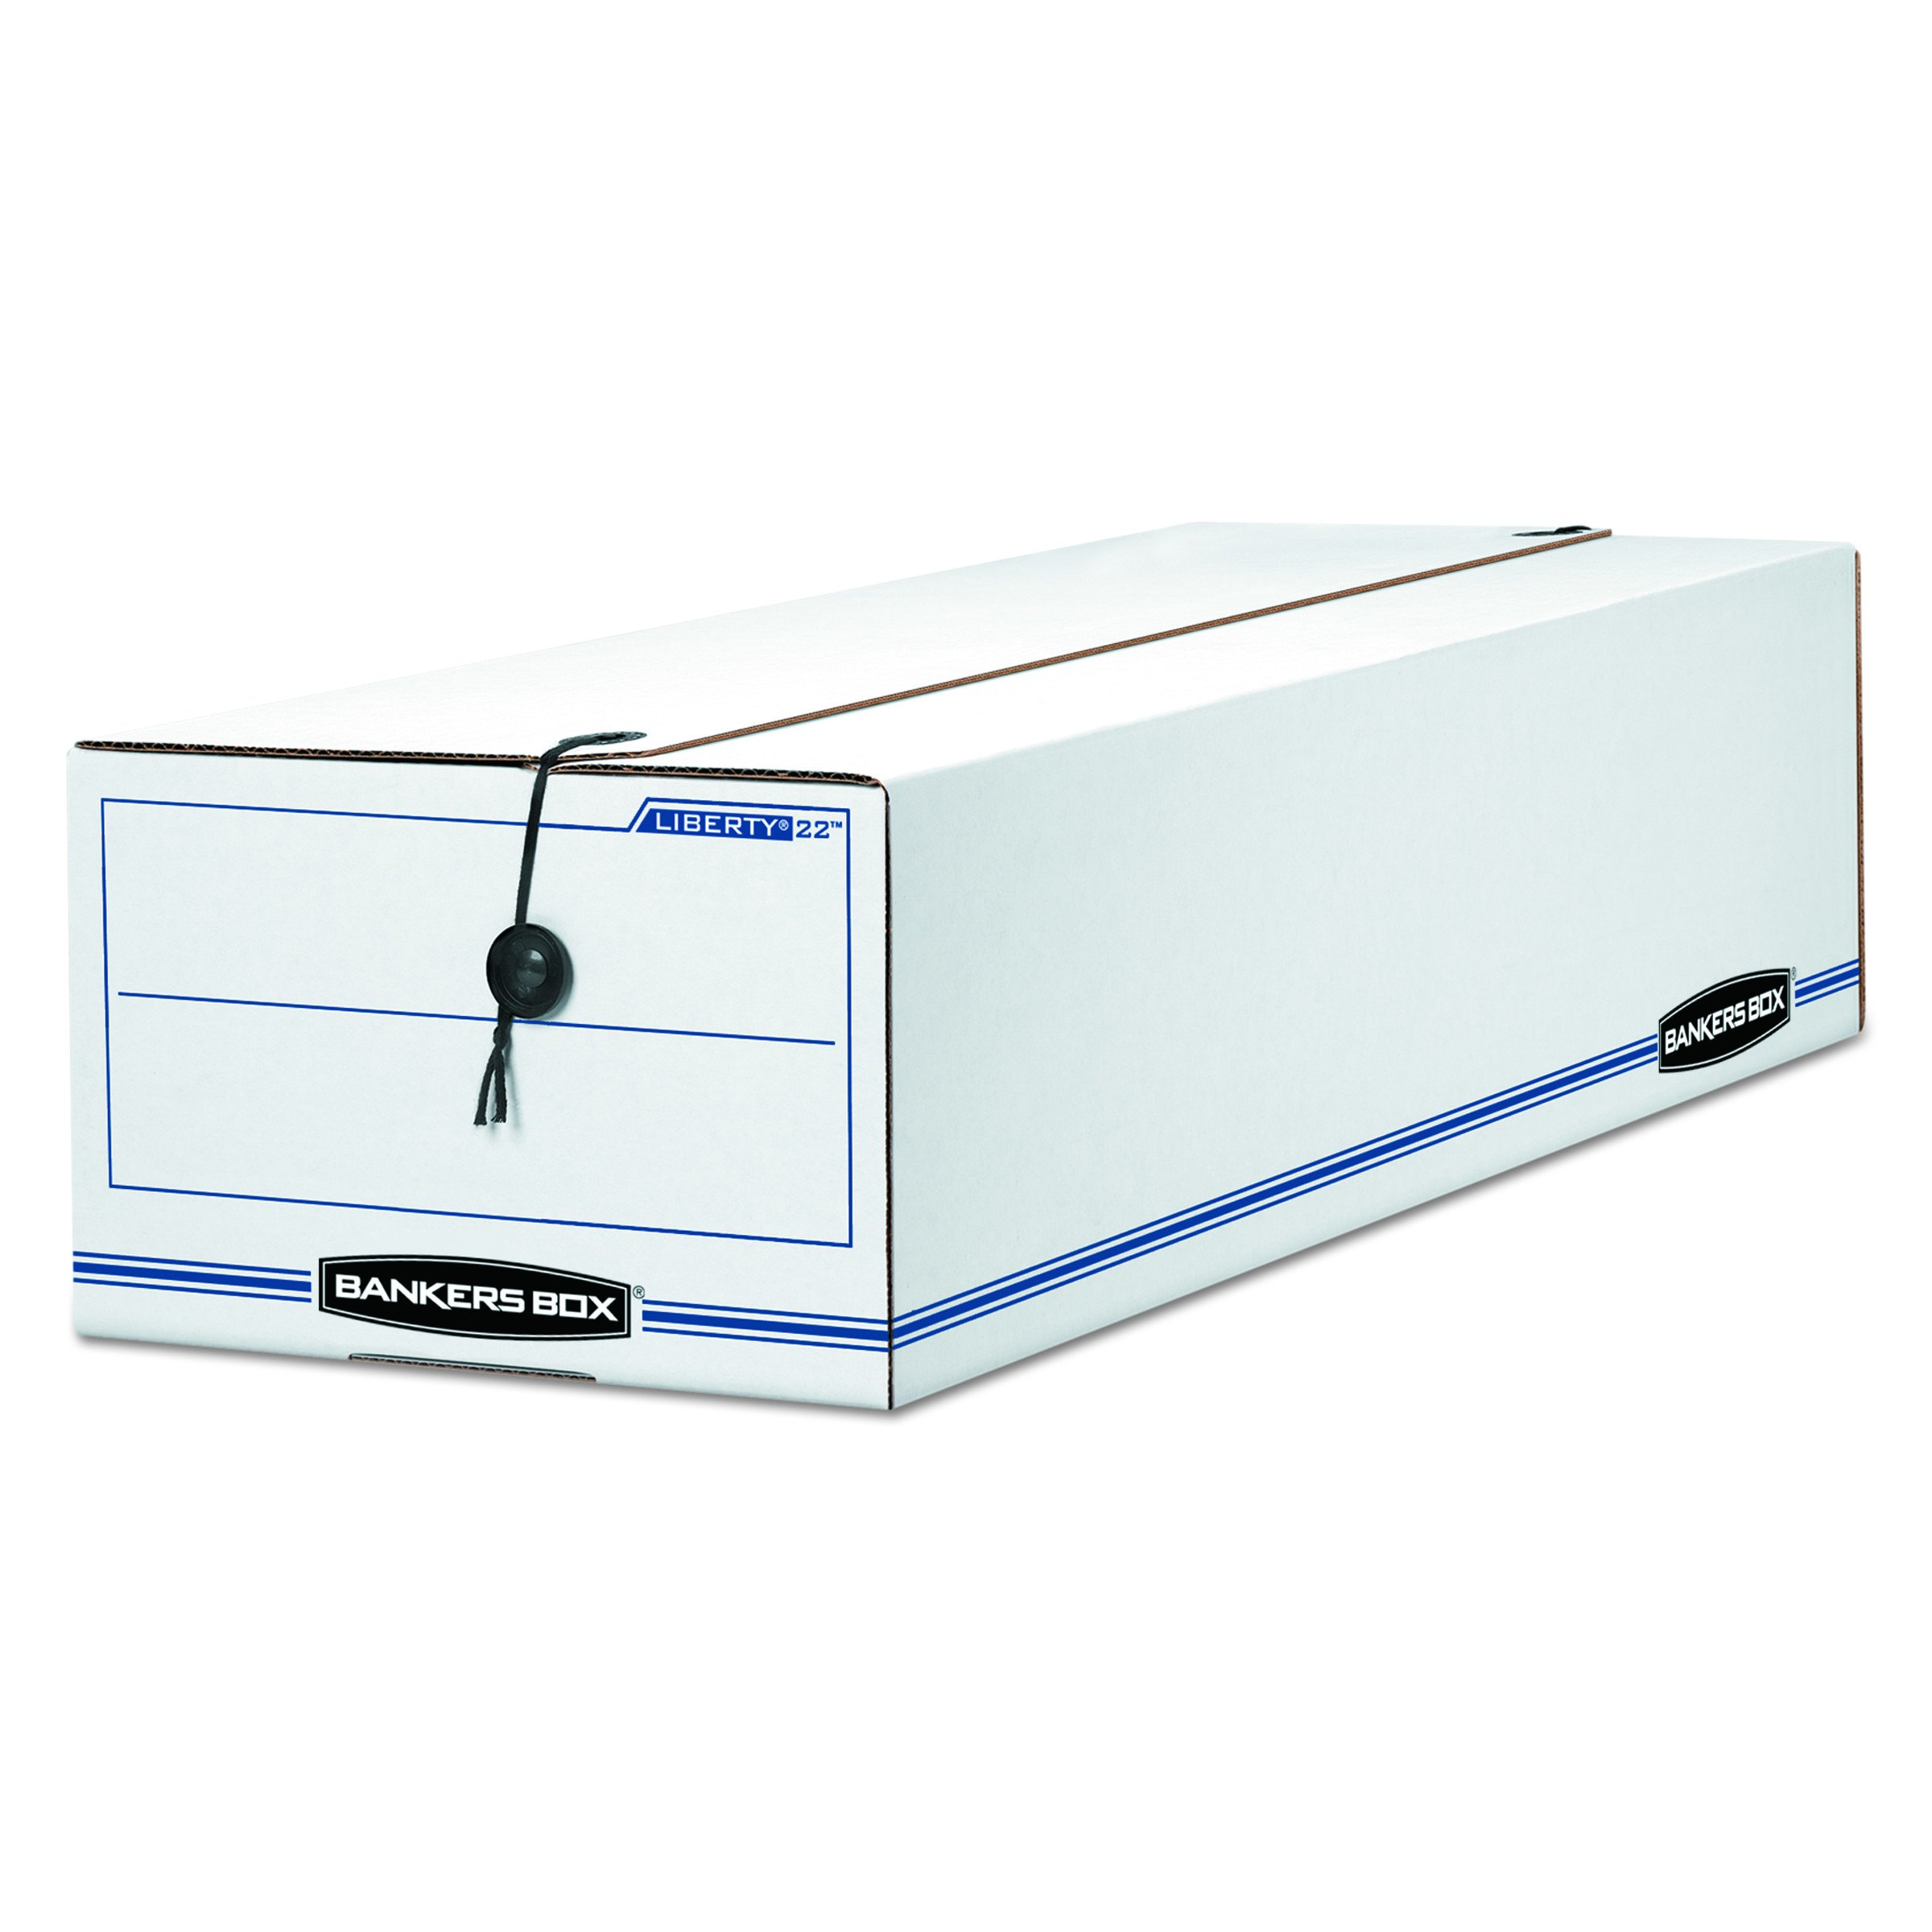 Bankers Box Liberty Check and Form Boxes, Records Forms, 7'' x 8.75'' x 23.75'', 12 Pack (00018)